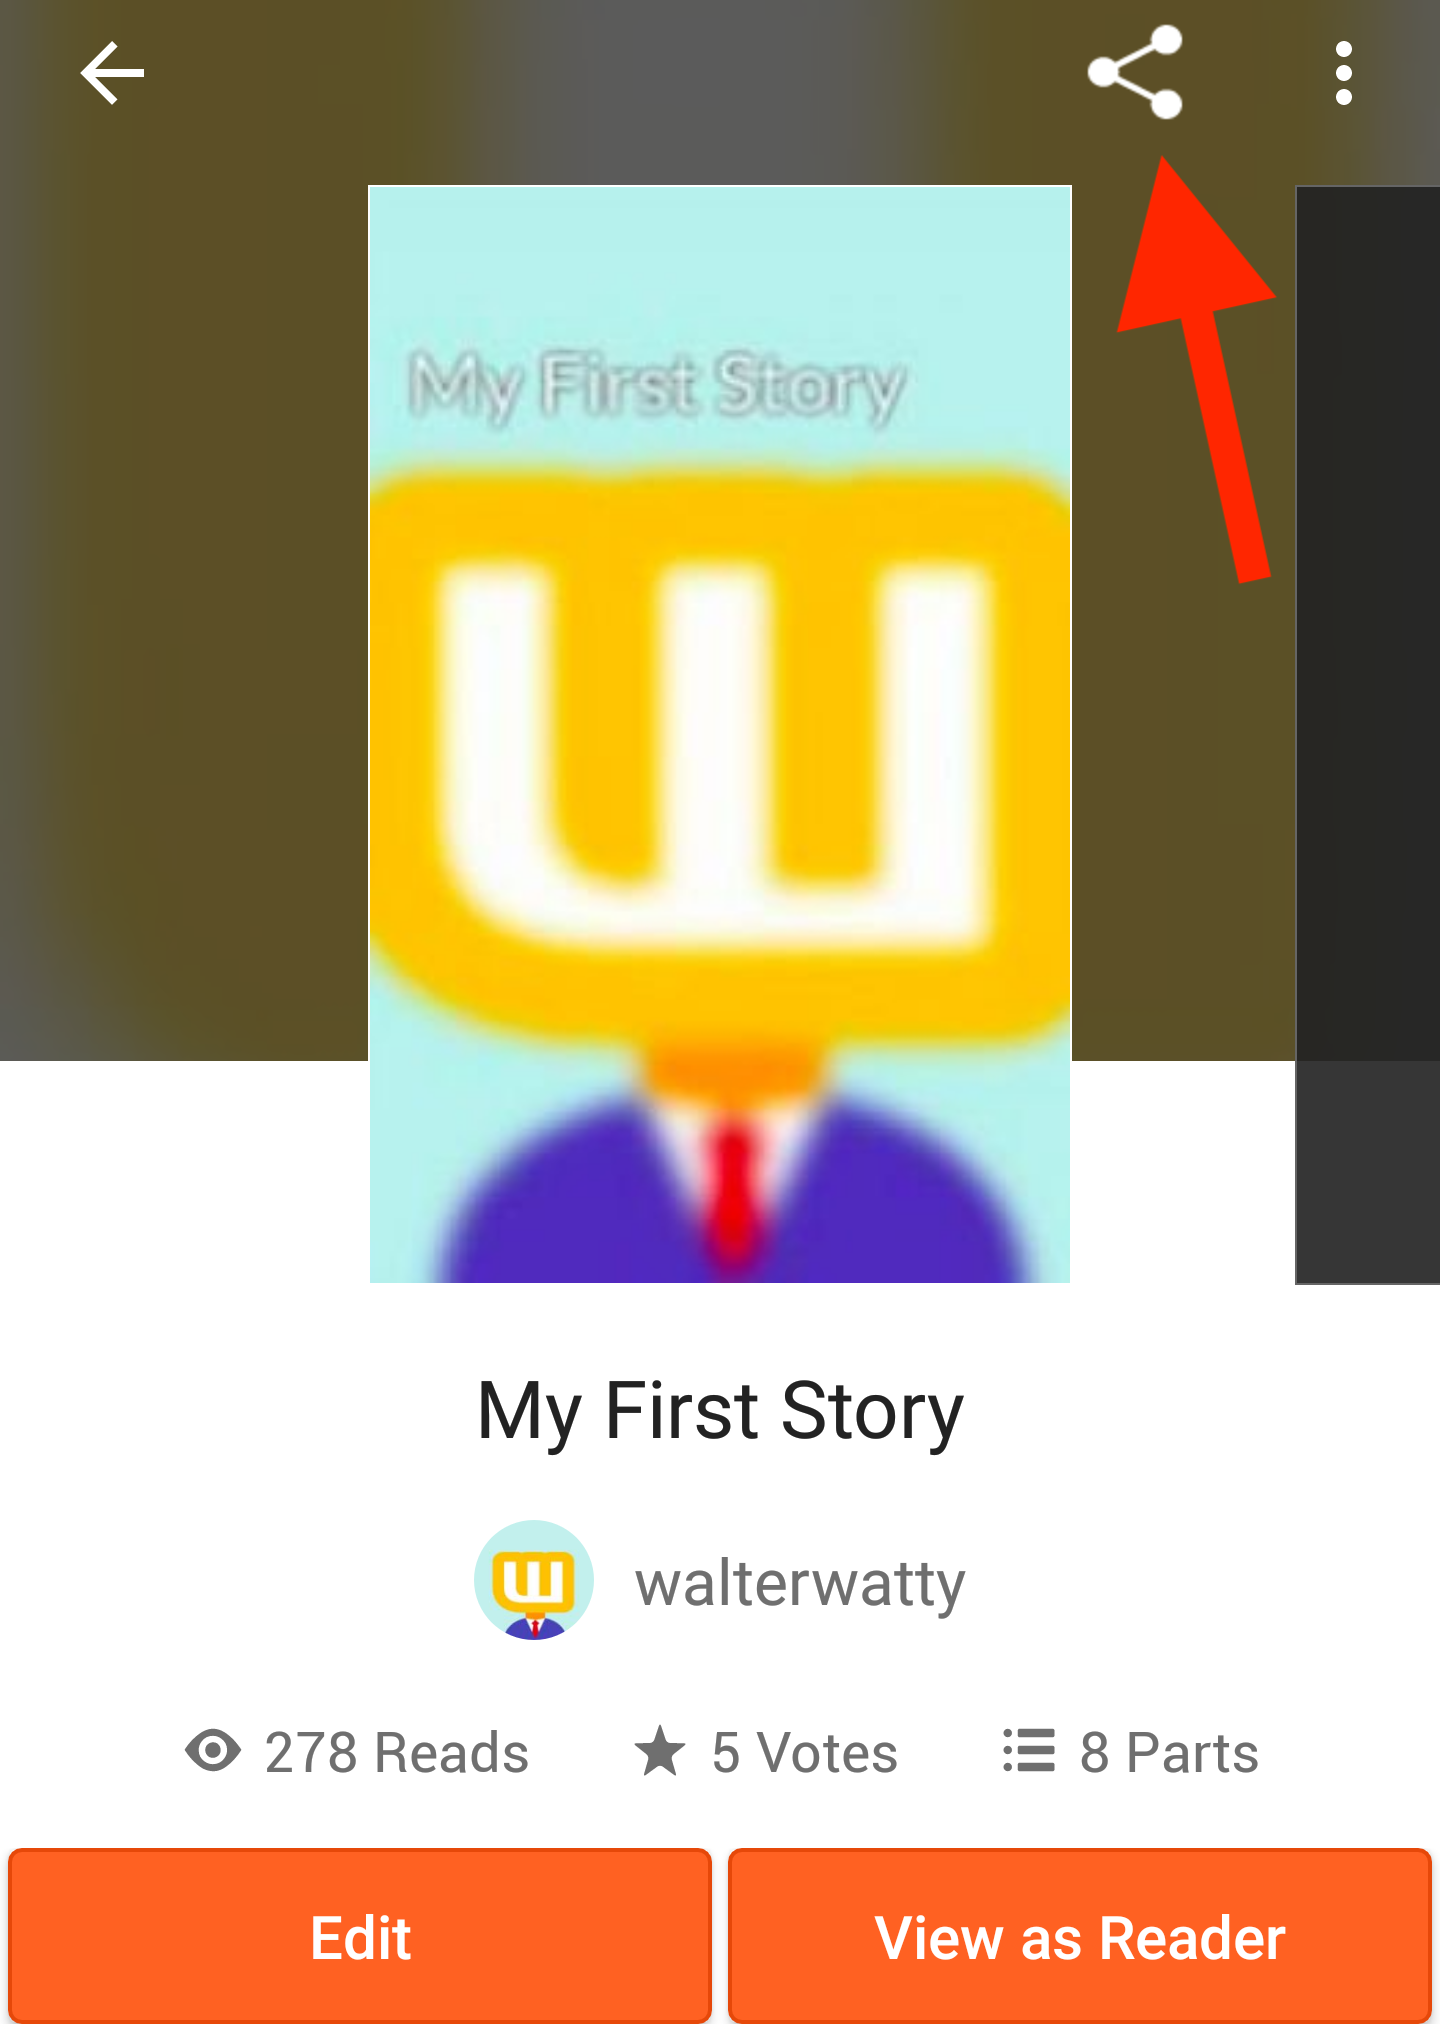 The story details page with arrow pointed towards share icon.